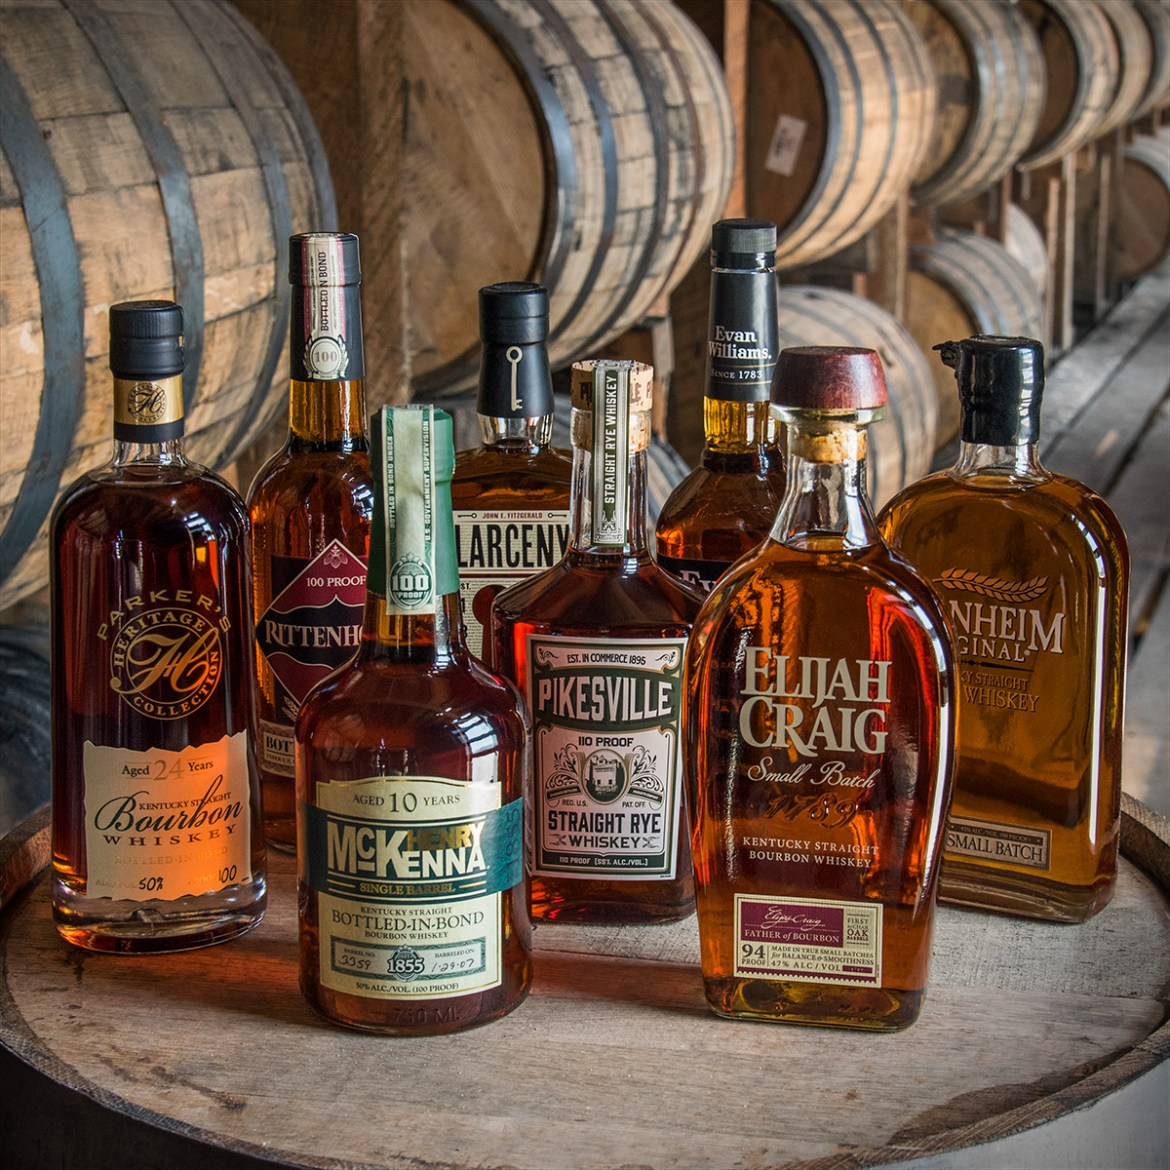 Heaven Hill product bottles